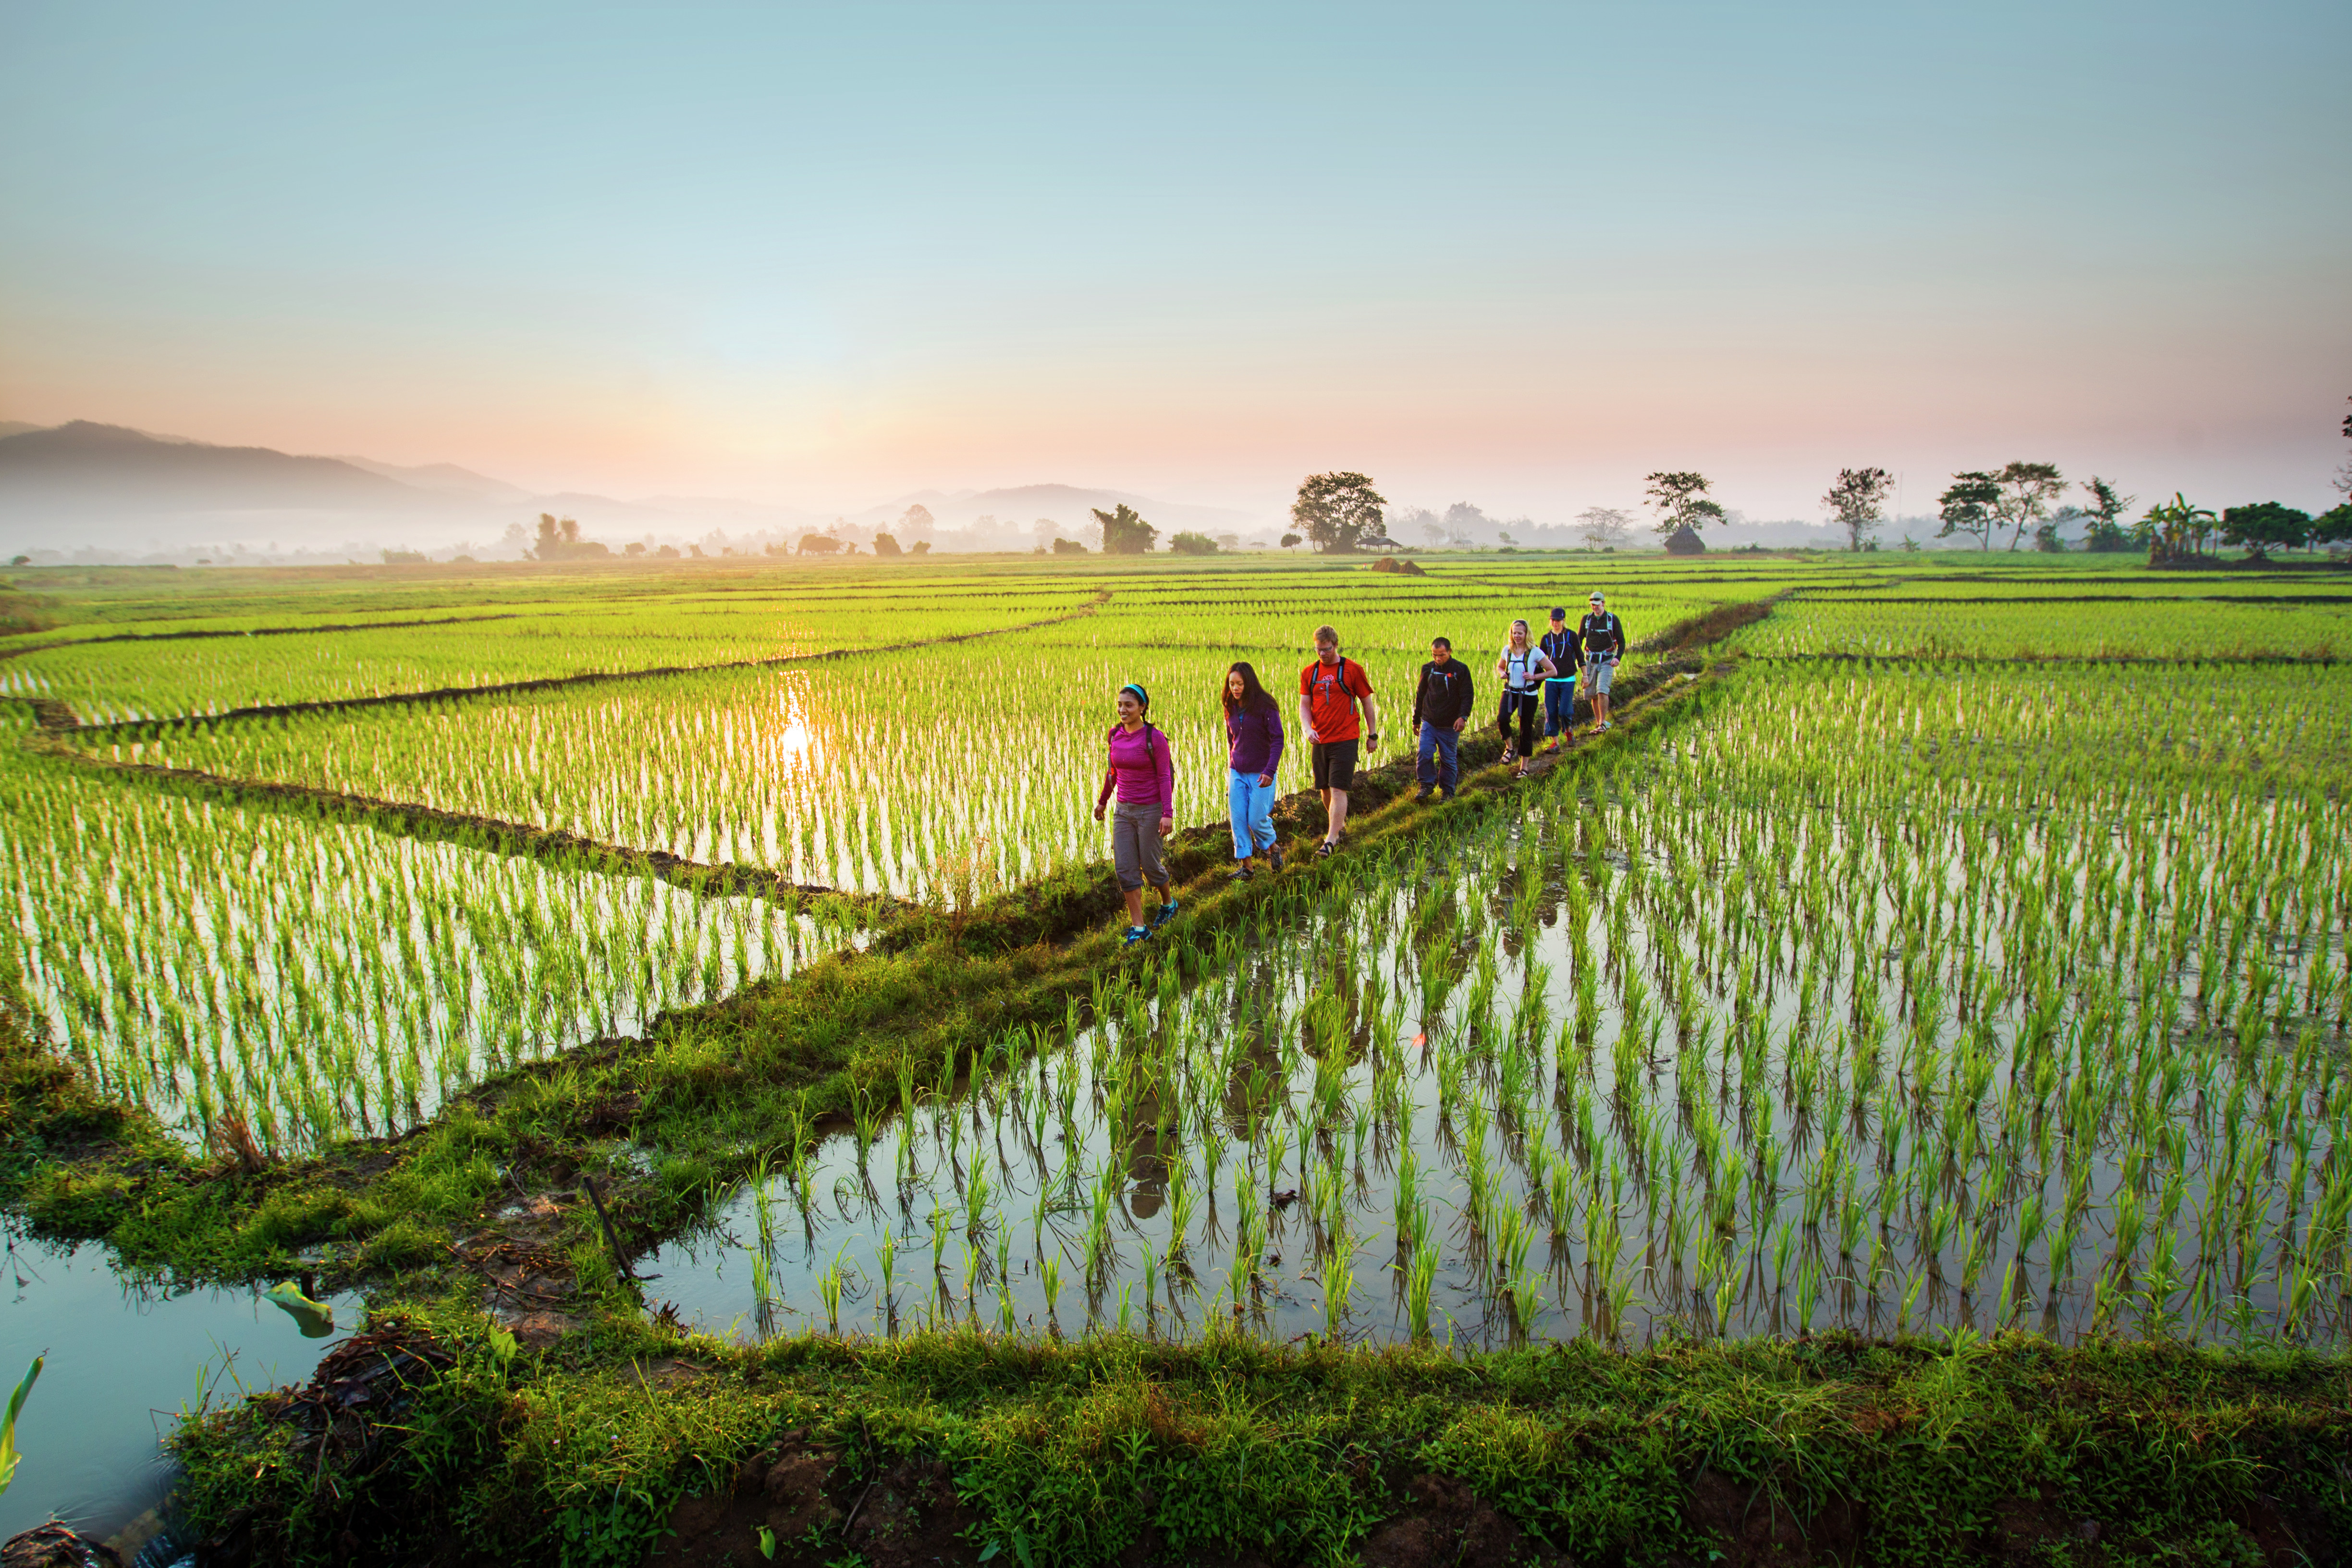 REI Adventures Discover Thailand - Chiang Mai to River Kwai